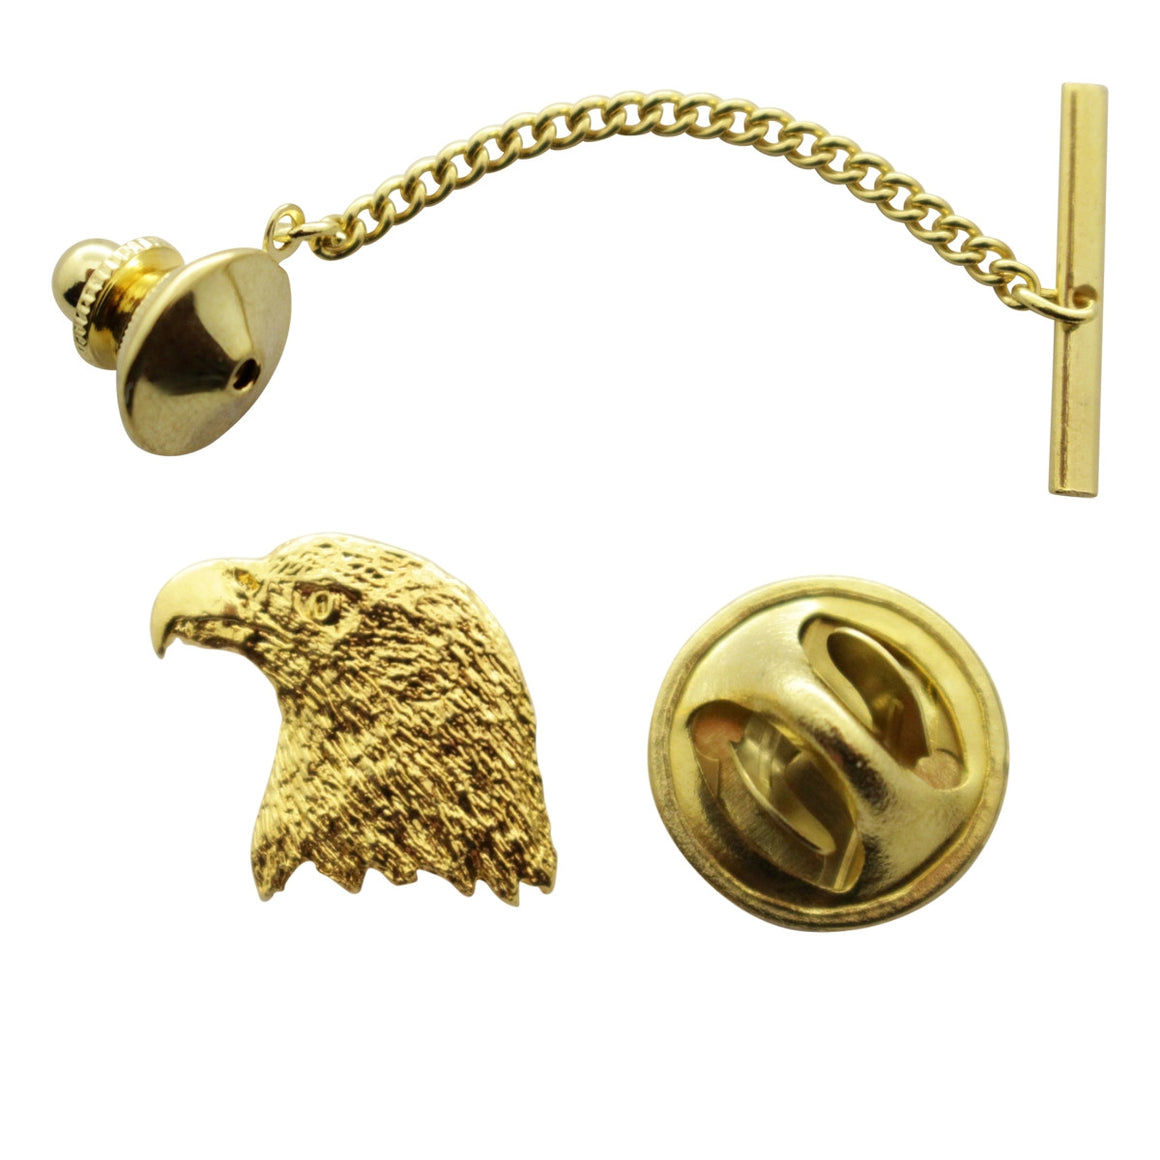 Eagle Tie Tack ~ 24K Gold ~ Tie Tack or Pin ~ 24K Gold Tie Tack or Pin ~ Sarah's Treats & Treasures